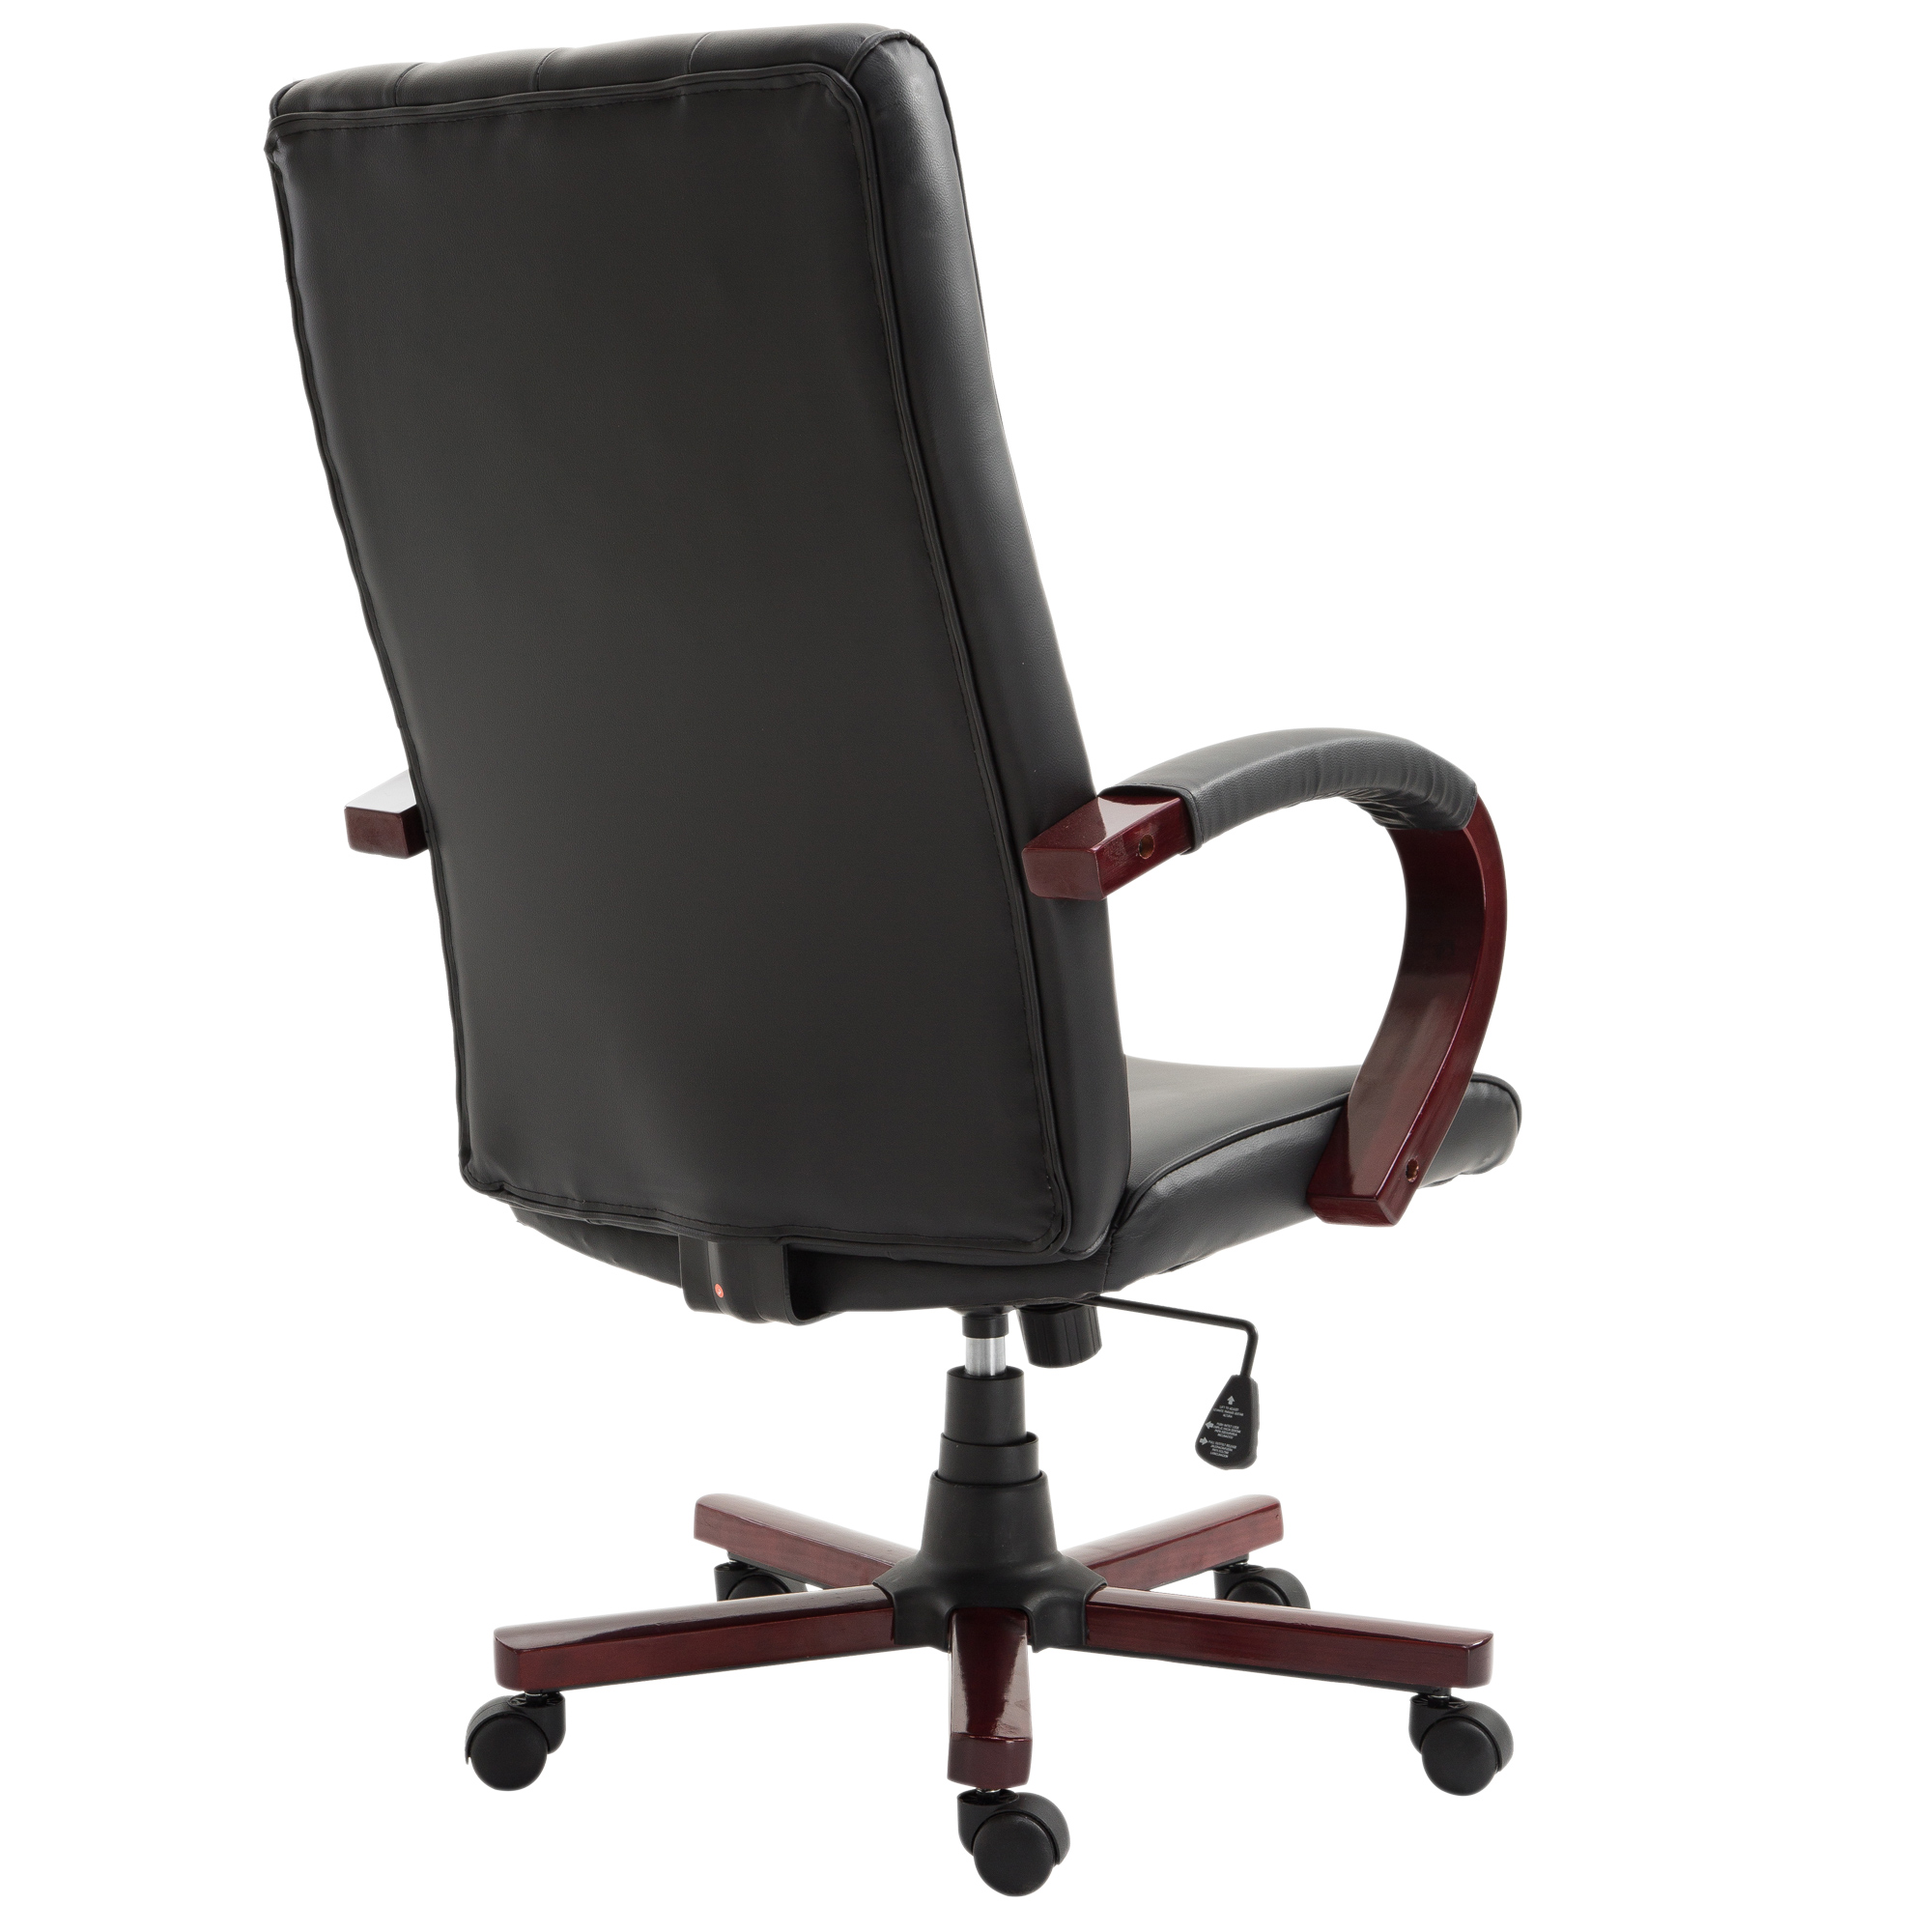 High Back Executive Office Chair PU Leather Ergonomic Computer Desk Task Seat